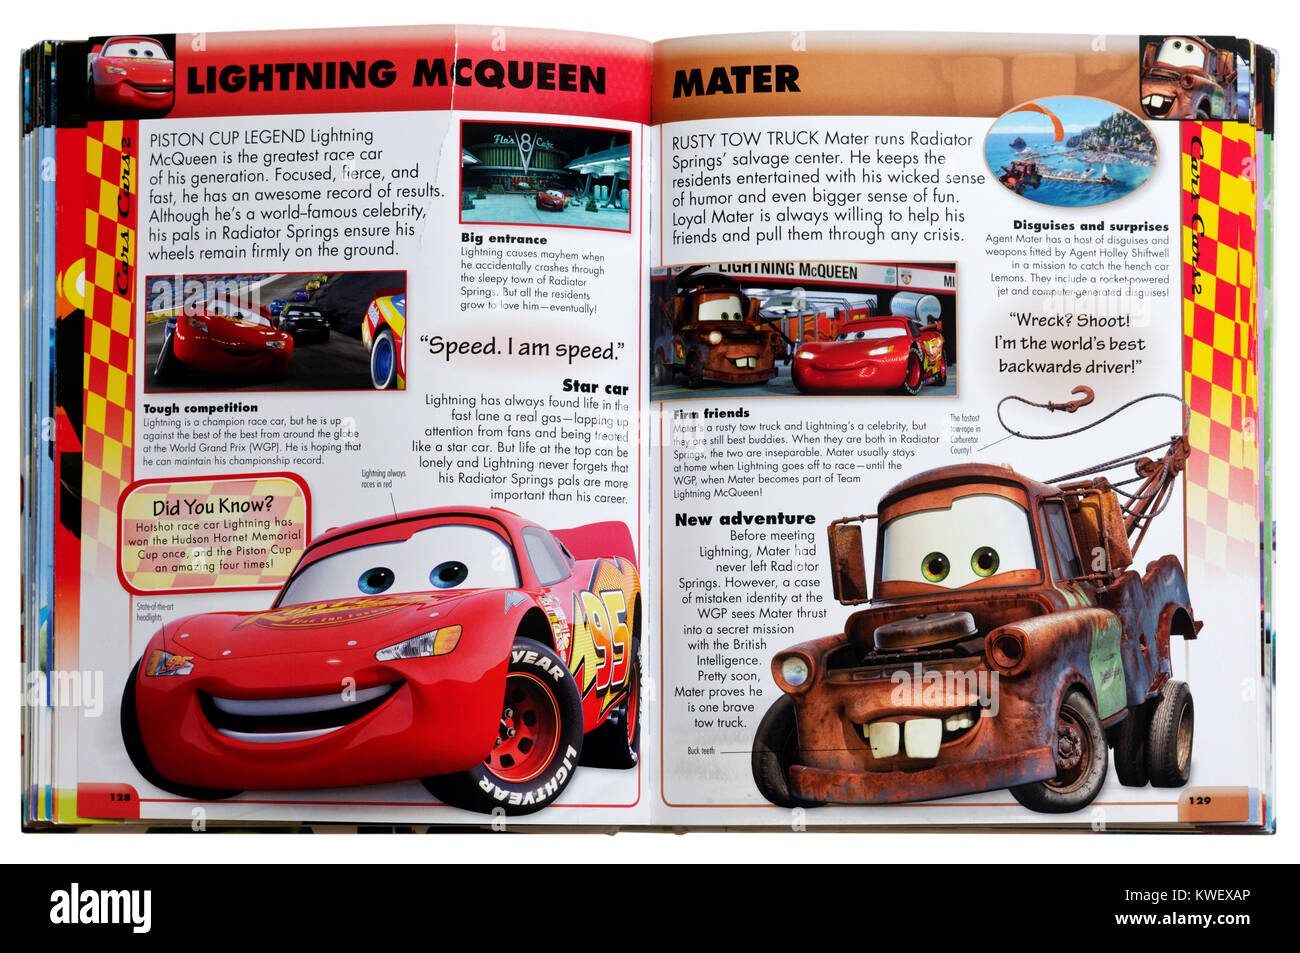 Pixar character Lightning McQueen and Tow Mater from the